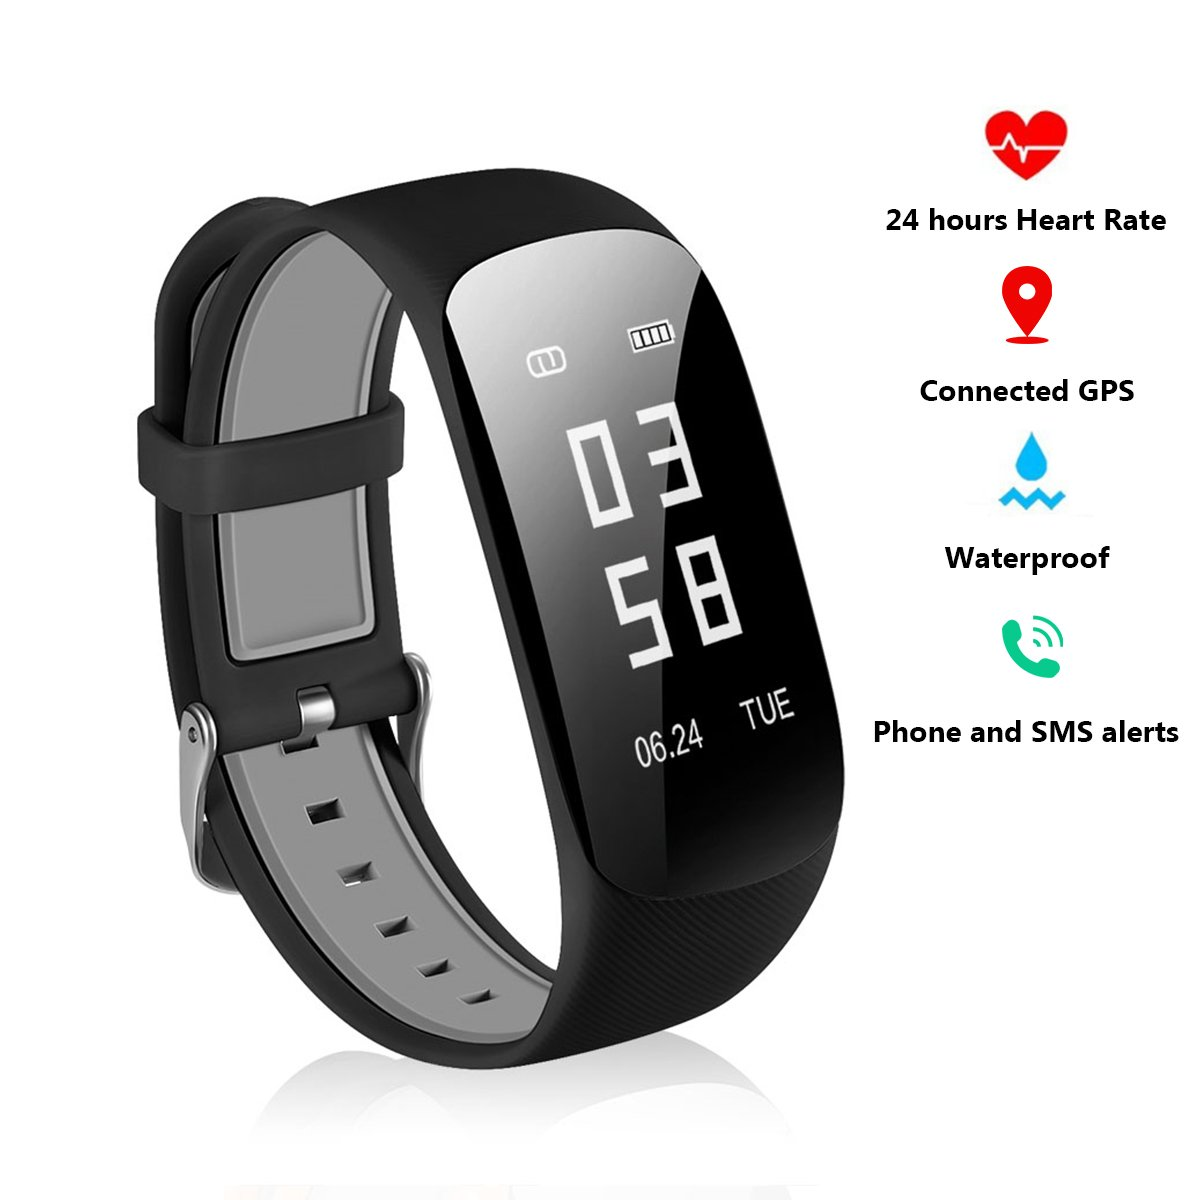 YOFAPA Fitness Tracker Activity Tracker - 24 Hours Heart Rate Monitor Watch IP67 Waterproof Smart Bracelet with Sleep Monitor Pedometer Fitness Sports Watch Bluetooth Wristband for Android and iOS